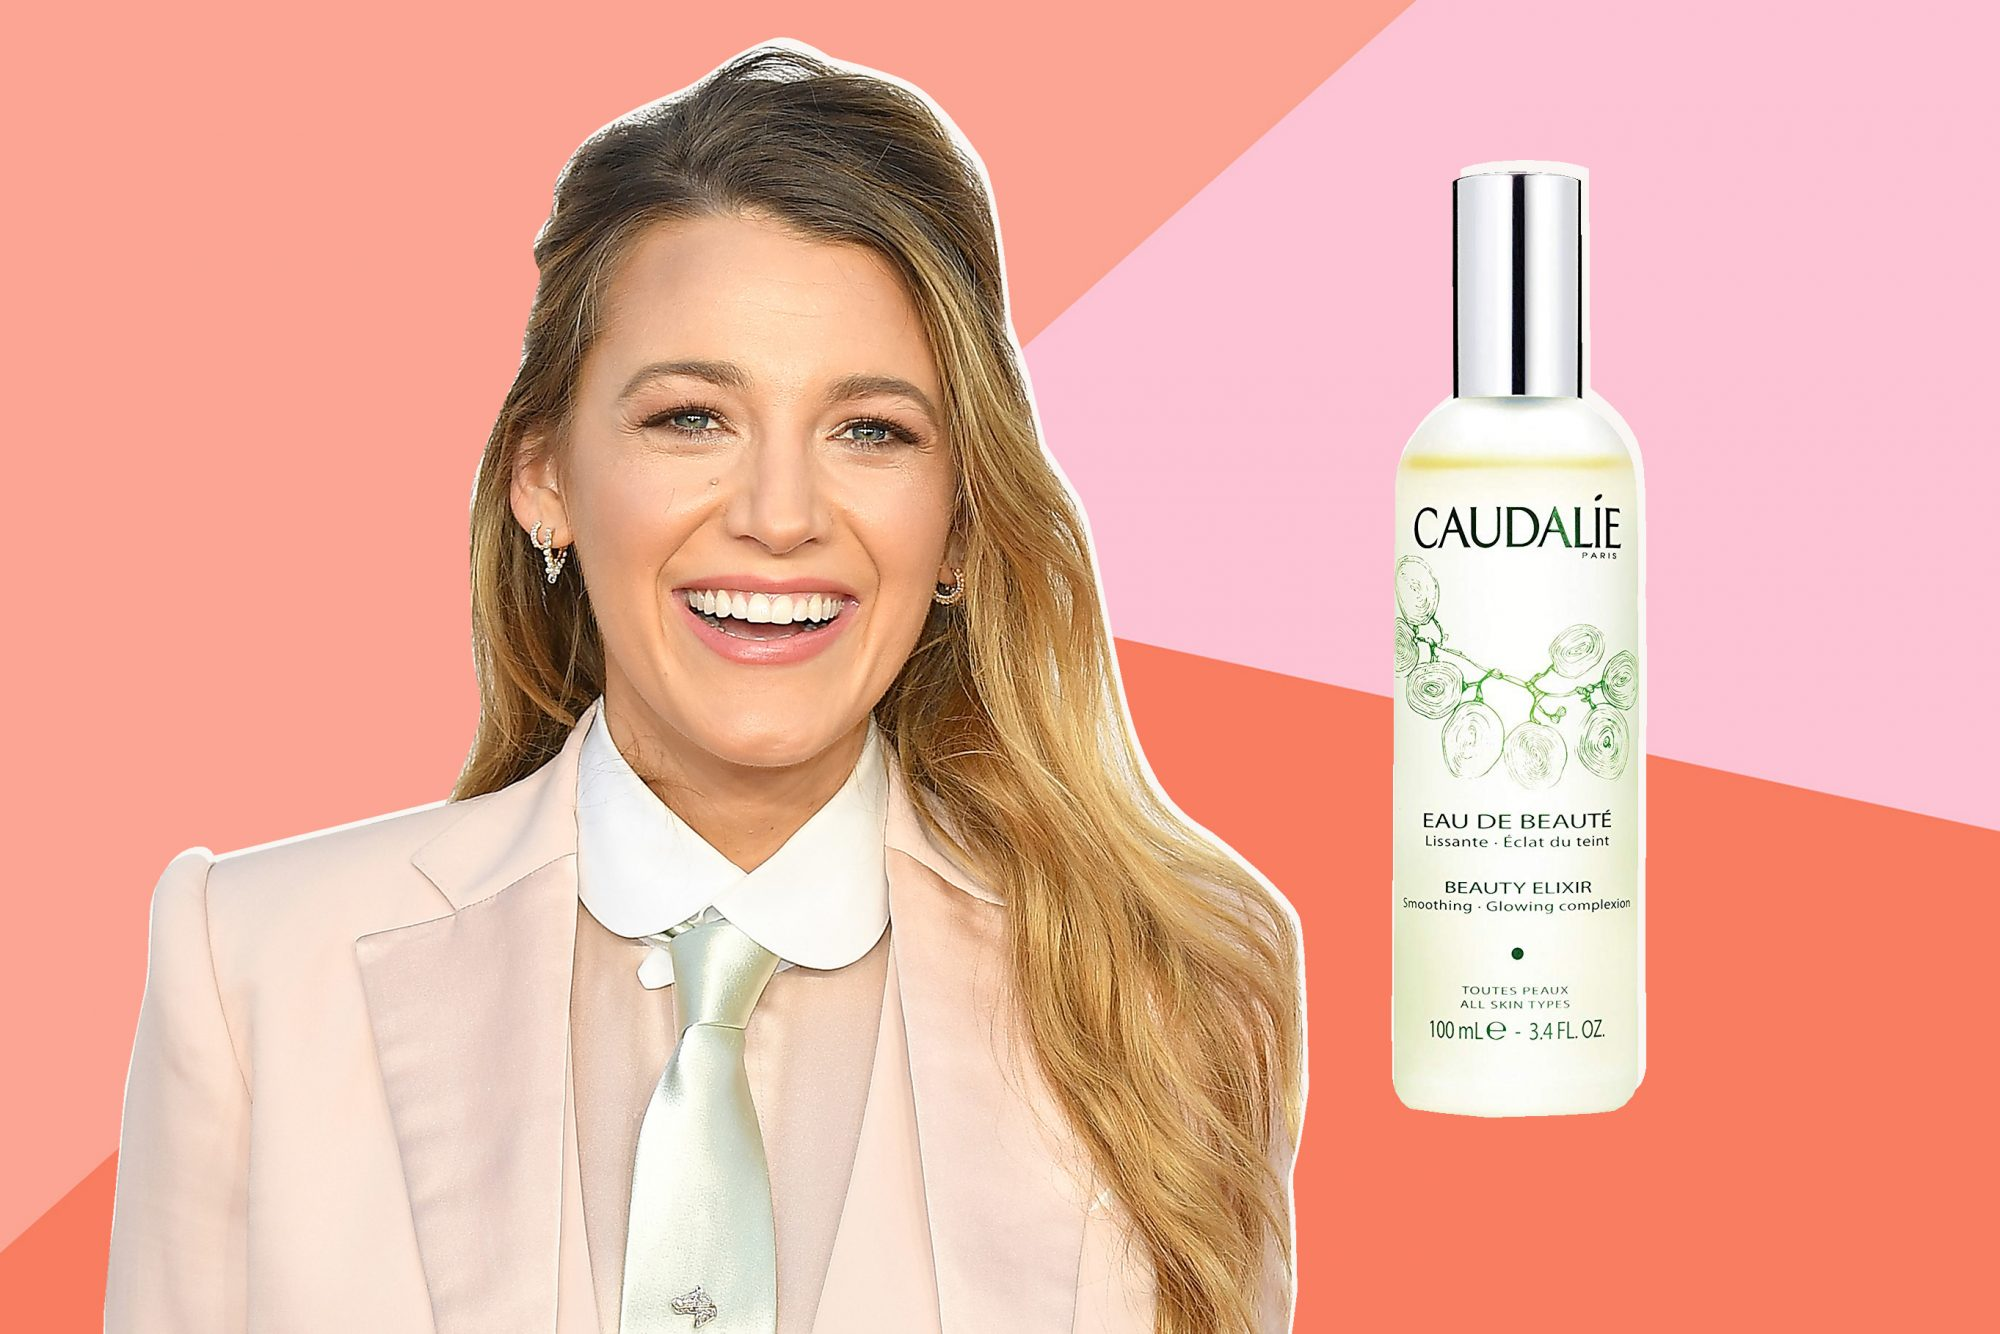 3 Beauty Essentials Blake Lively Uses to Achieve Glowing Skin—and They're All Under $20